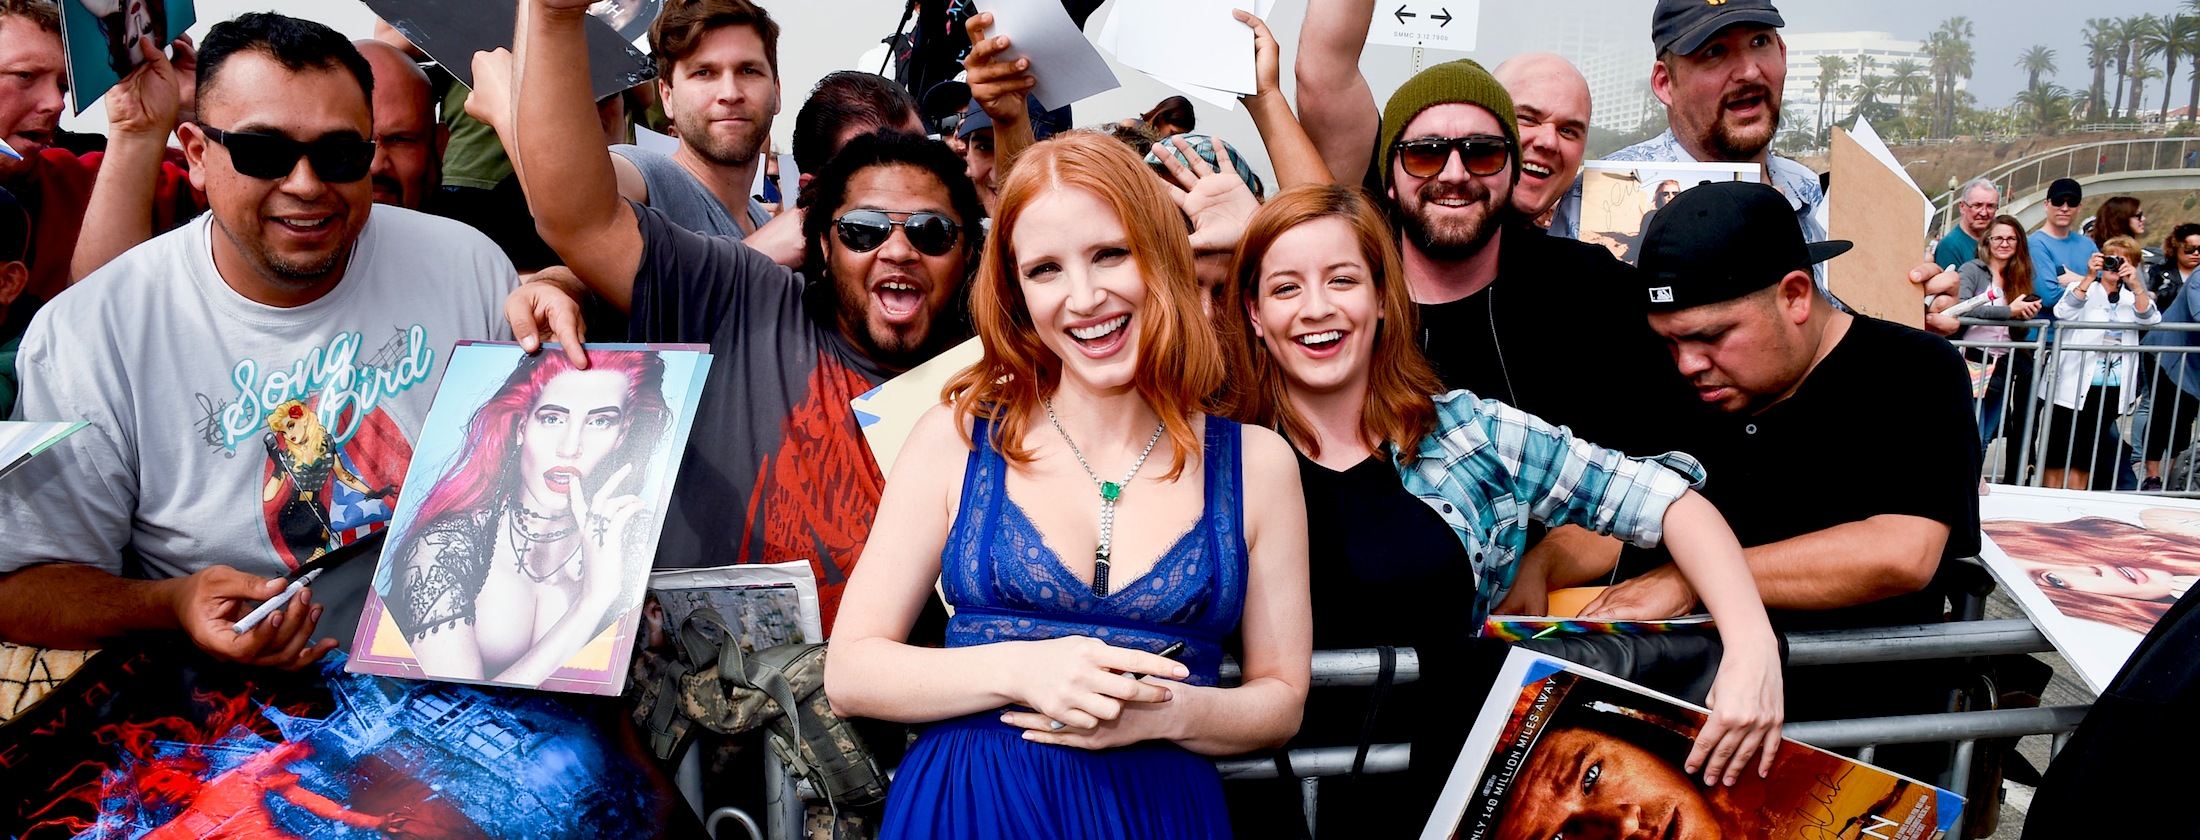 SANTA MONICA, CA - FEBRUARY 27:  (EDITORS NOTE: This image has been digitally altered.) Actress Jessica Chastain attends the 2016 Film Independent Spirit Awards on February 27, 2016 in Santa Monica, California.  (Photo by George Pimentel/WireImage)